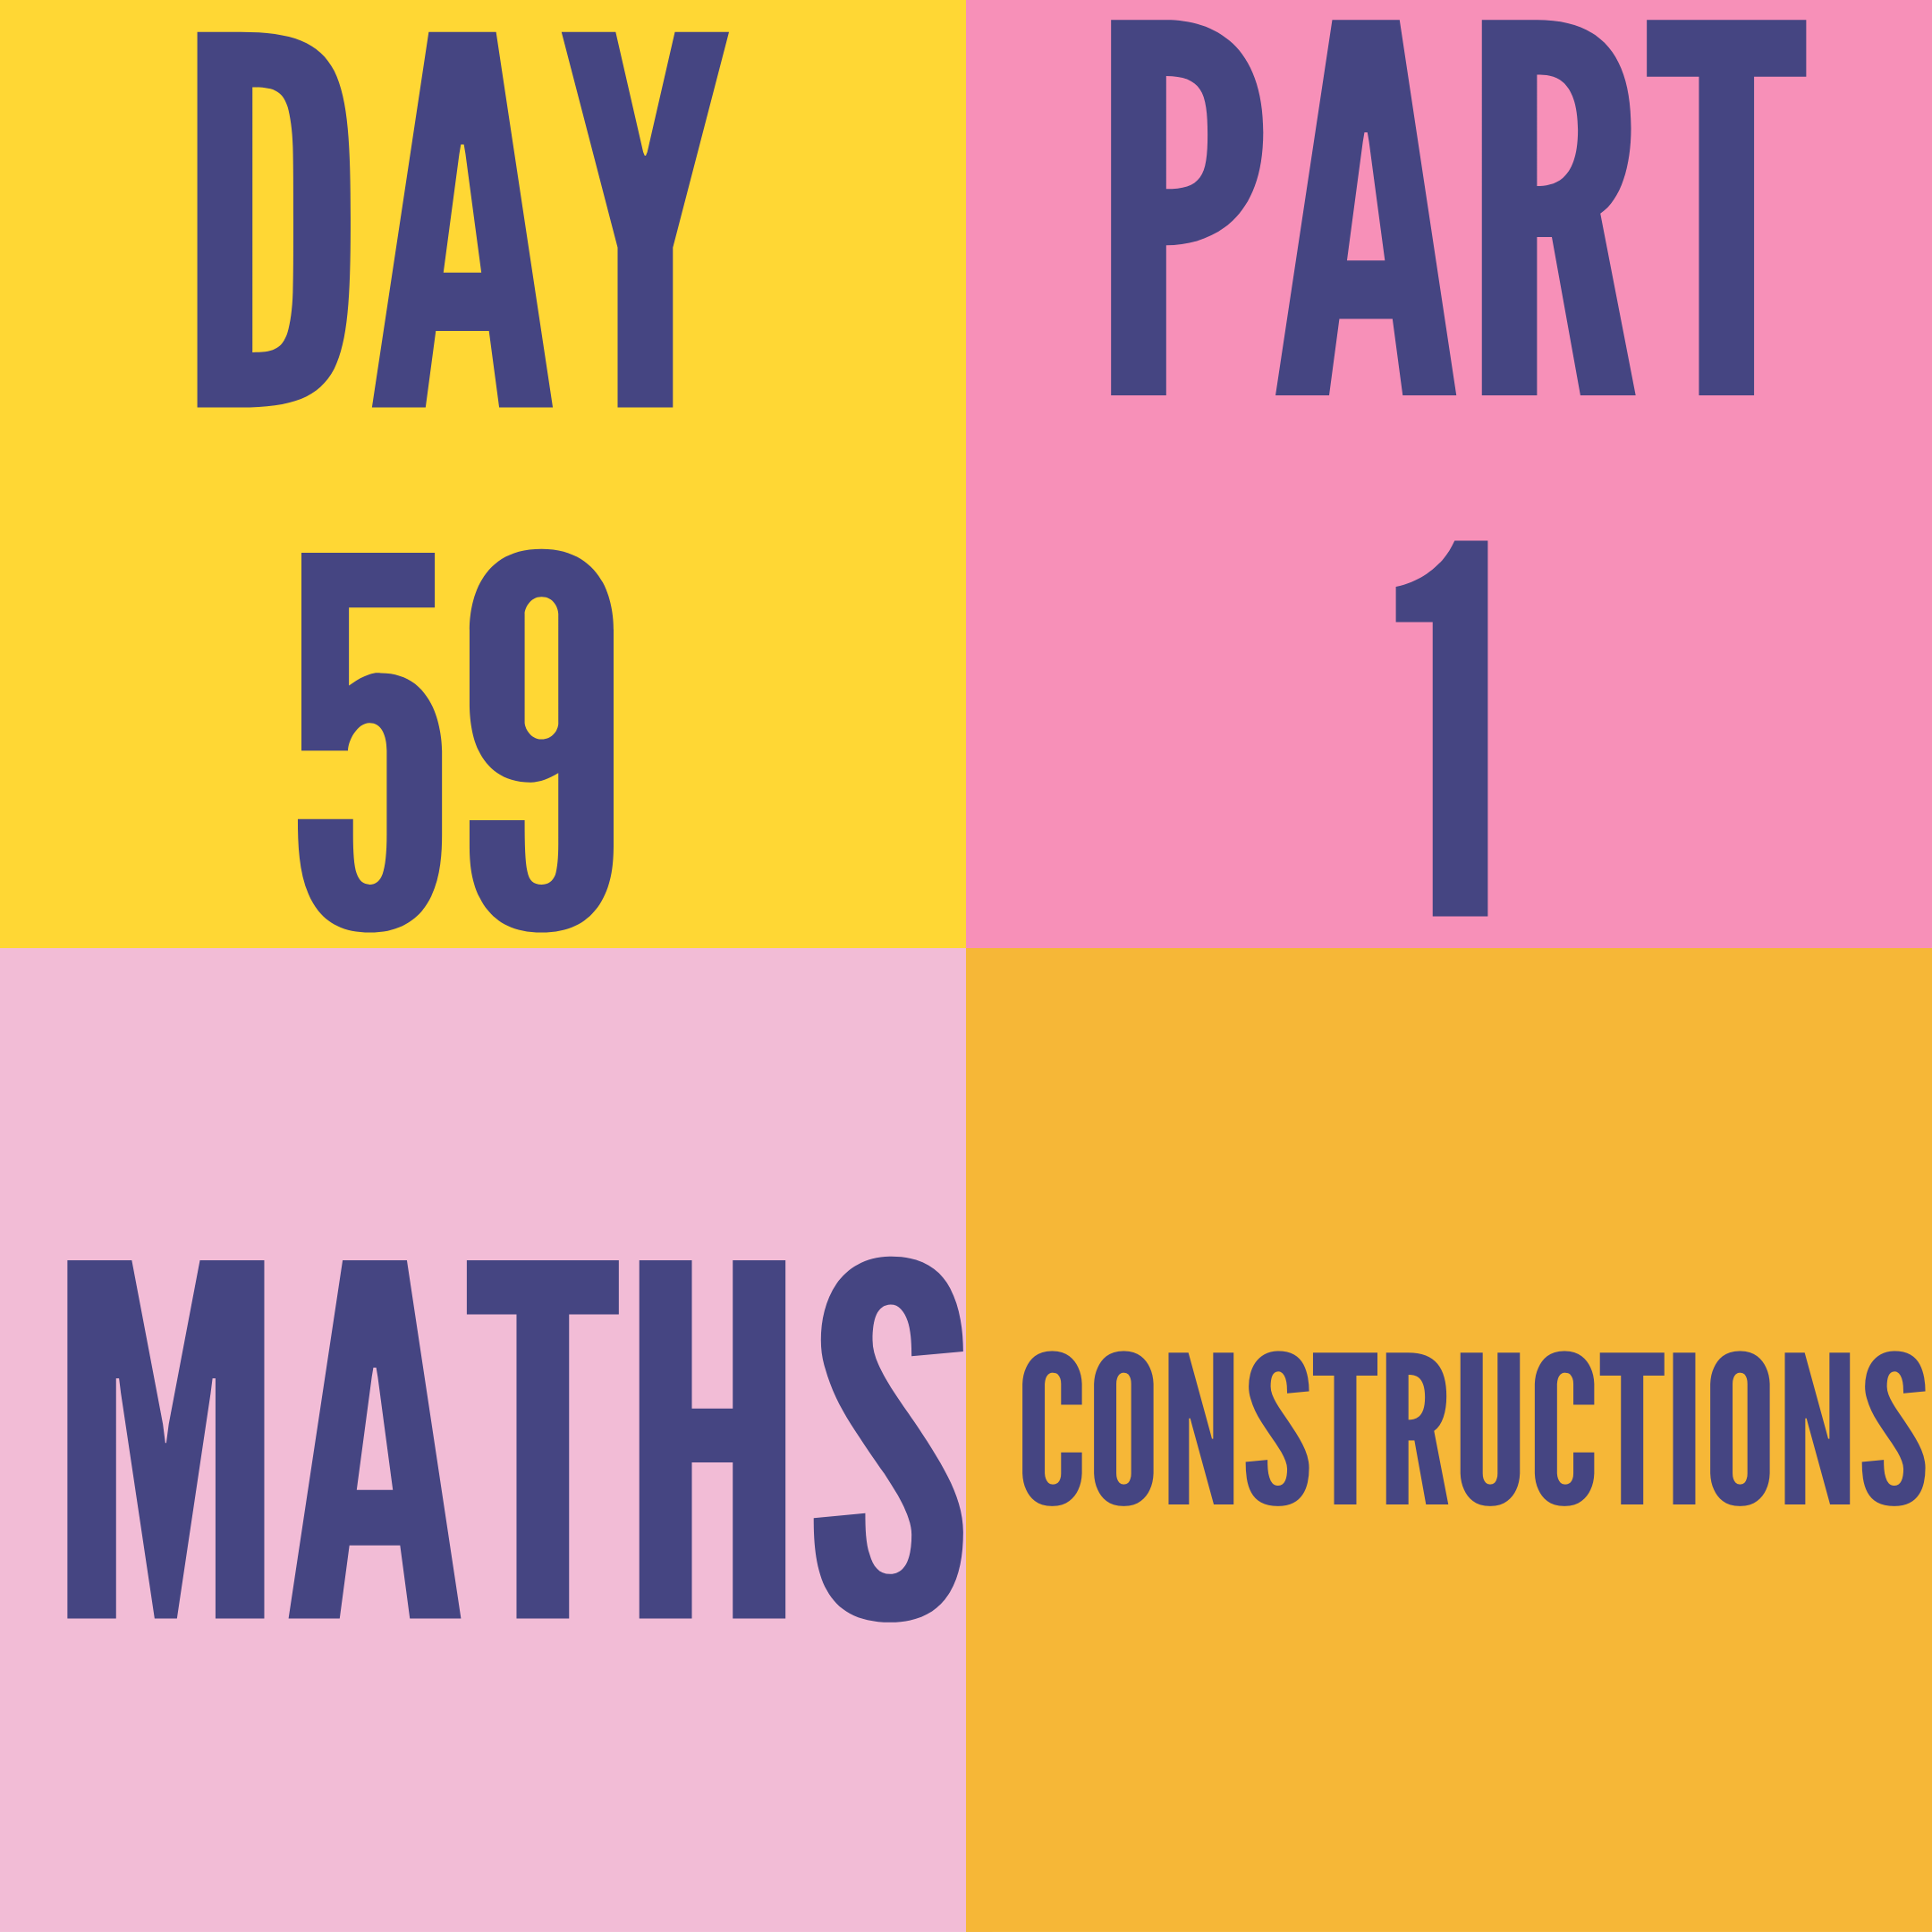 DAY-59 PART-1 CONSTRUCTIONS